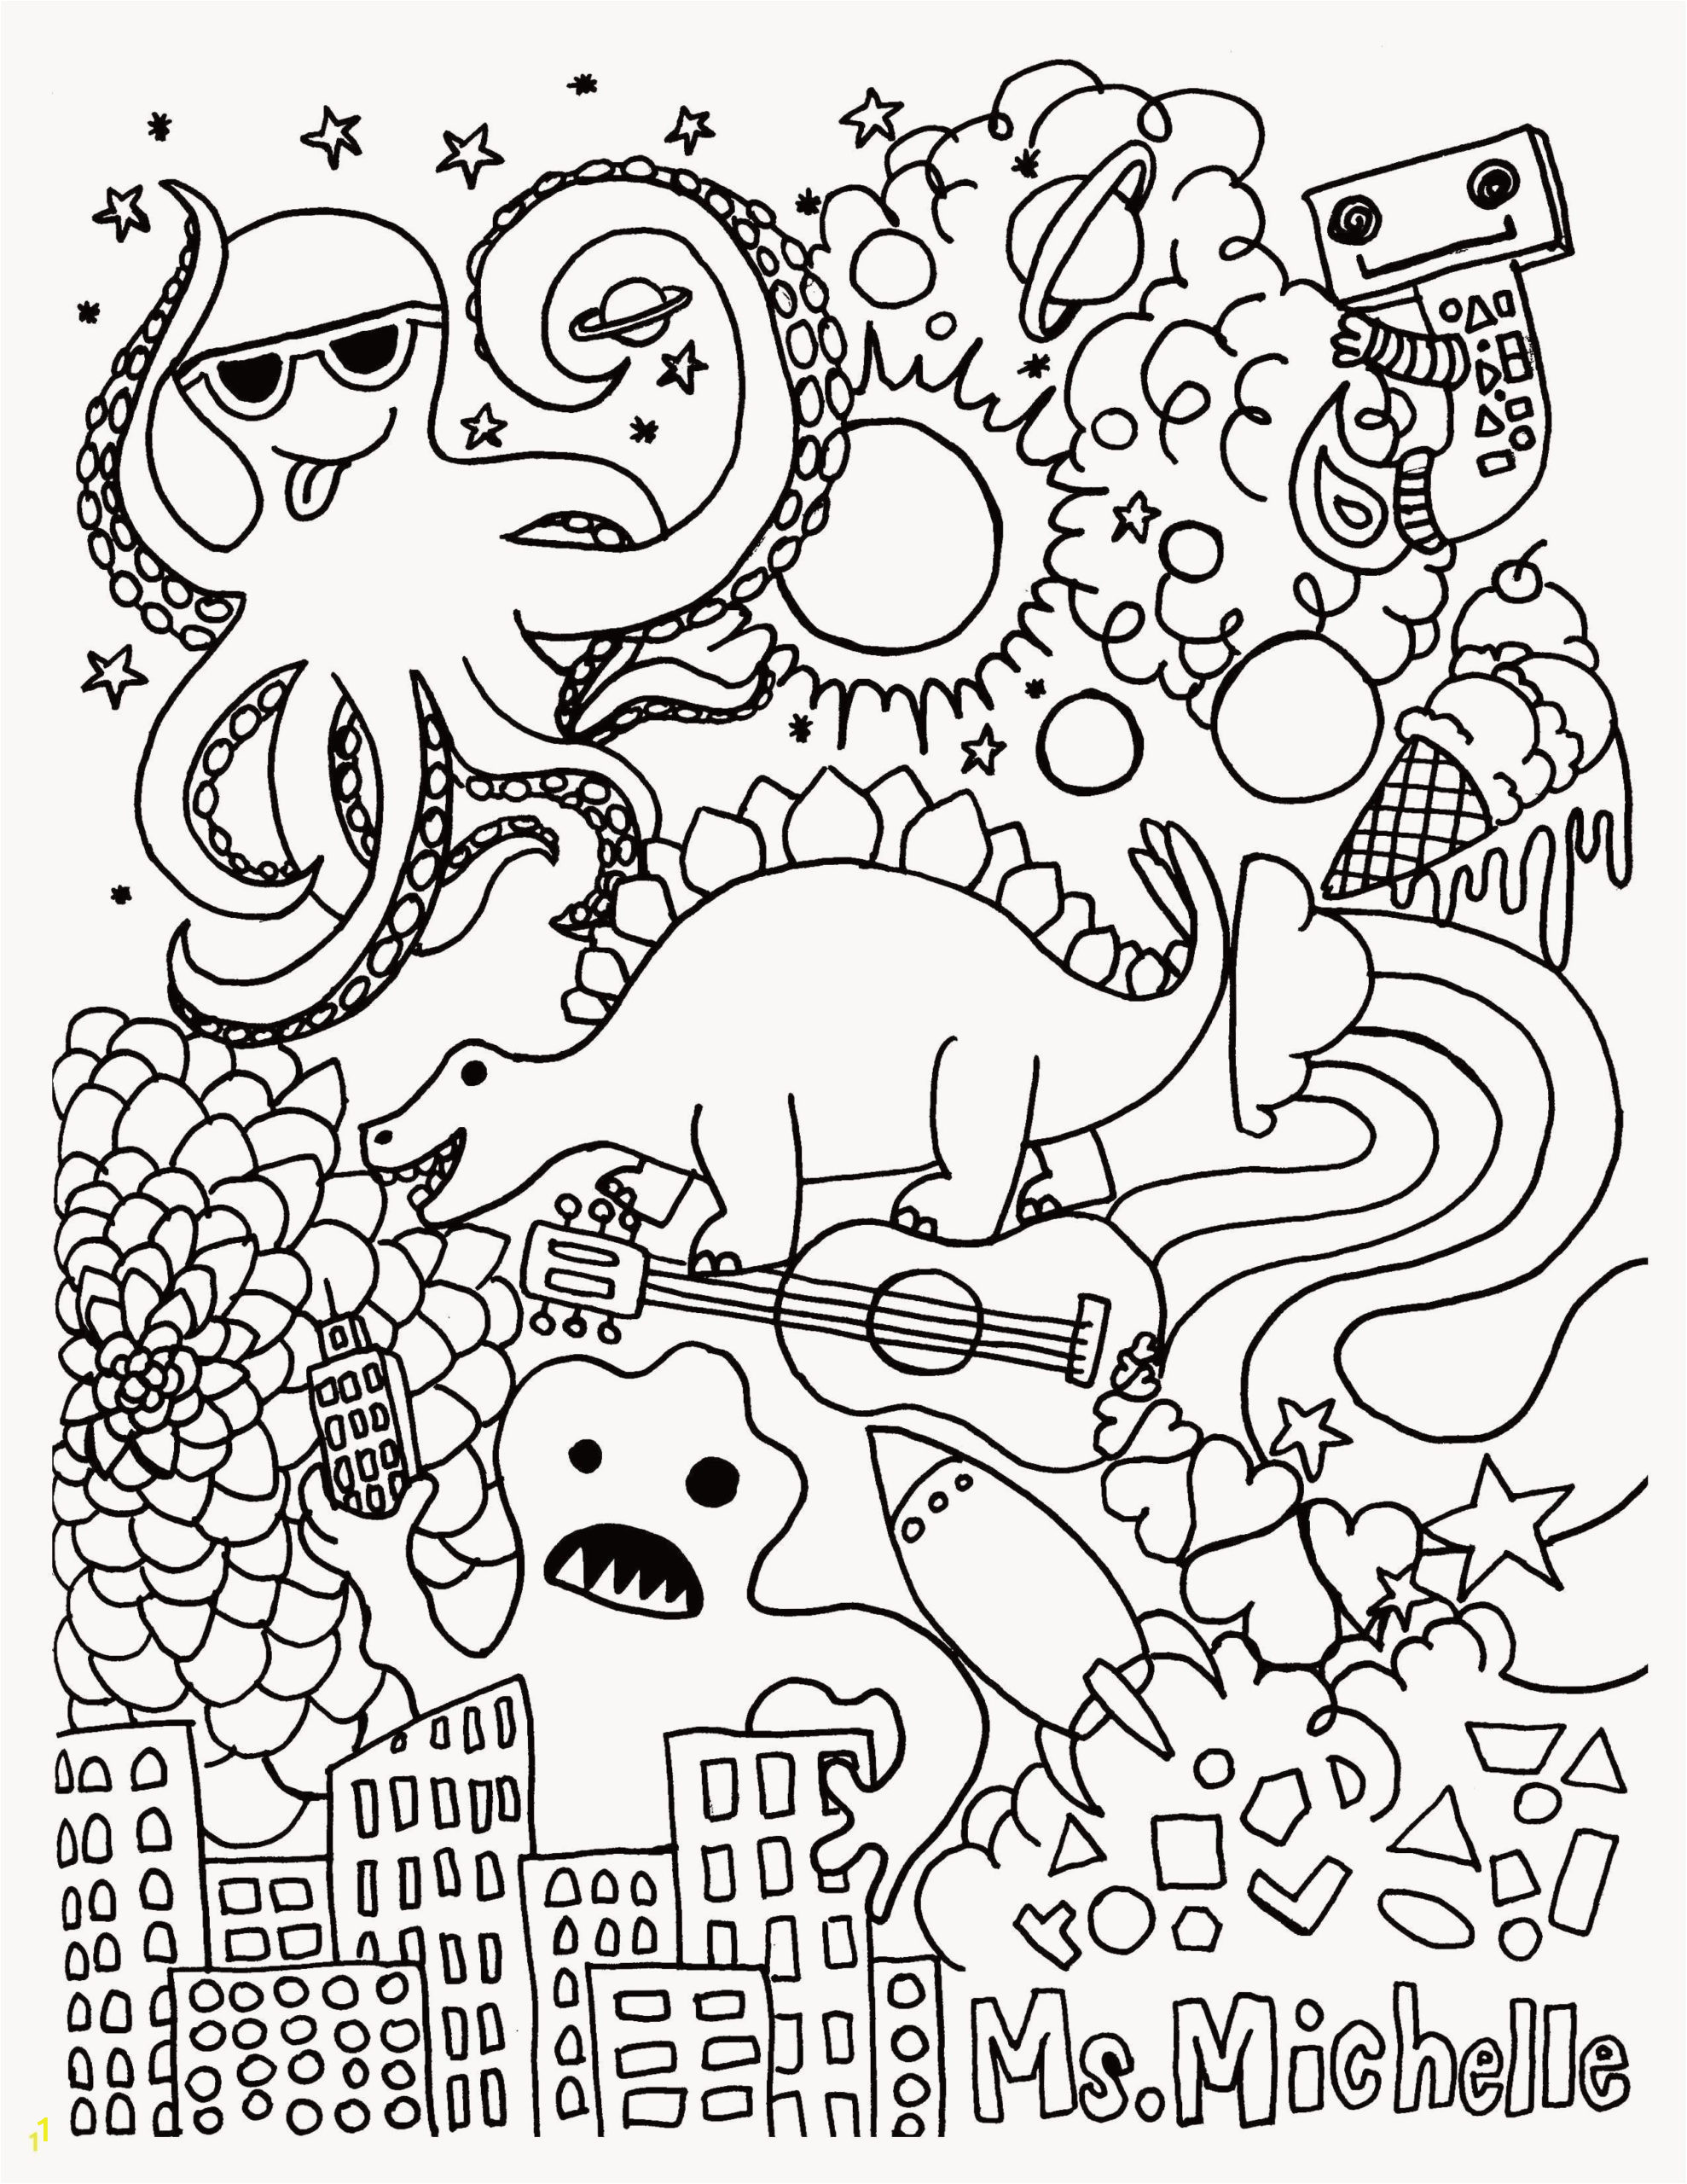 difficult colouring christmas lights coloring page relaxing pages for kids dune book weird adults thank you adult minions elementary watercolour december printable sheets trump royal